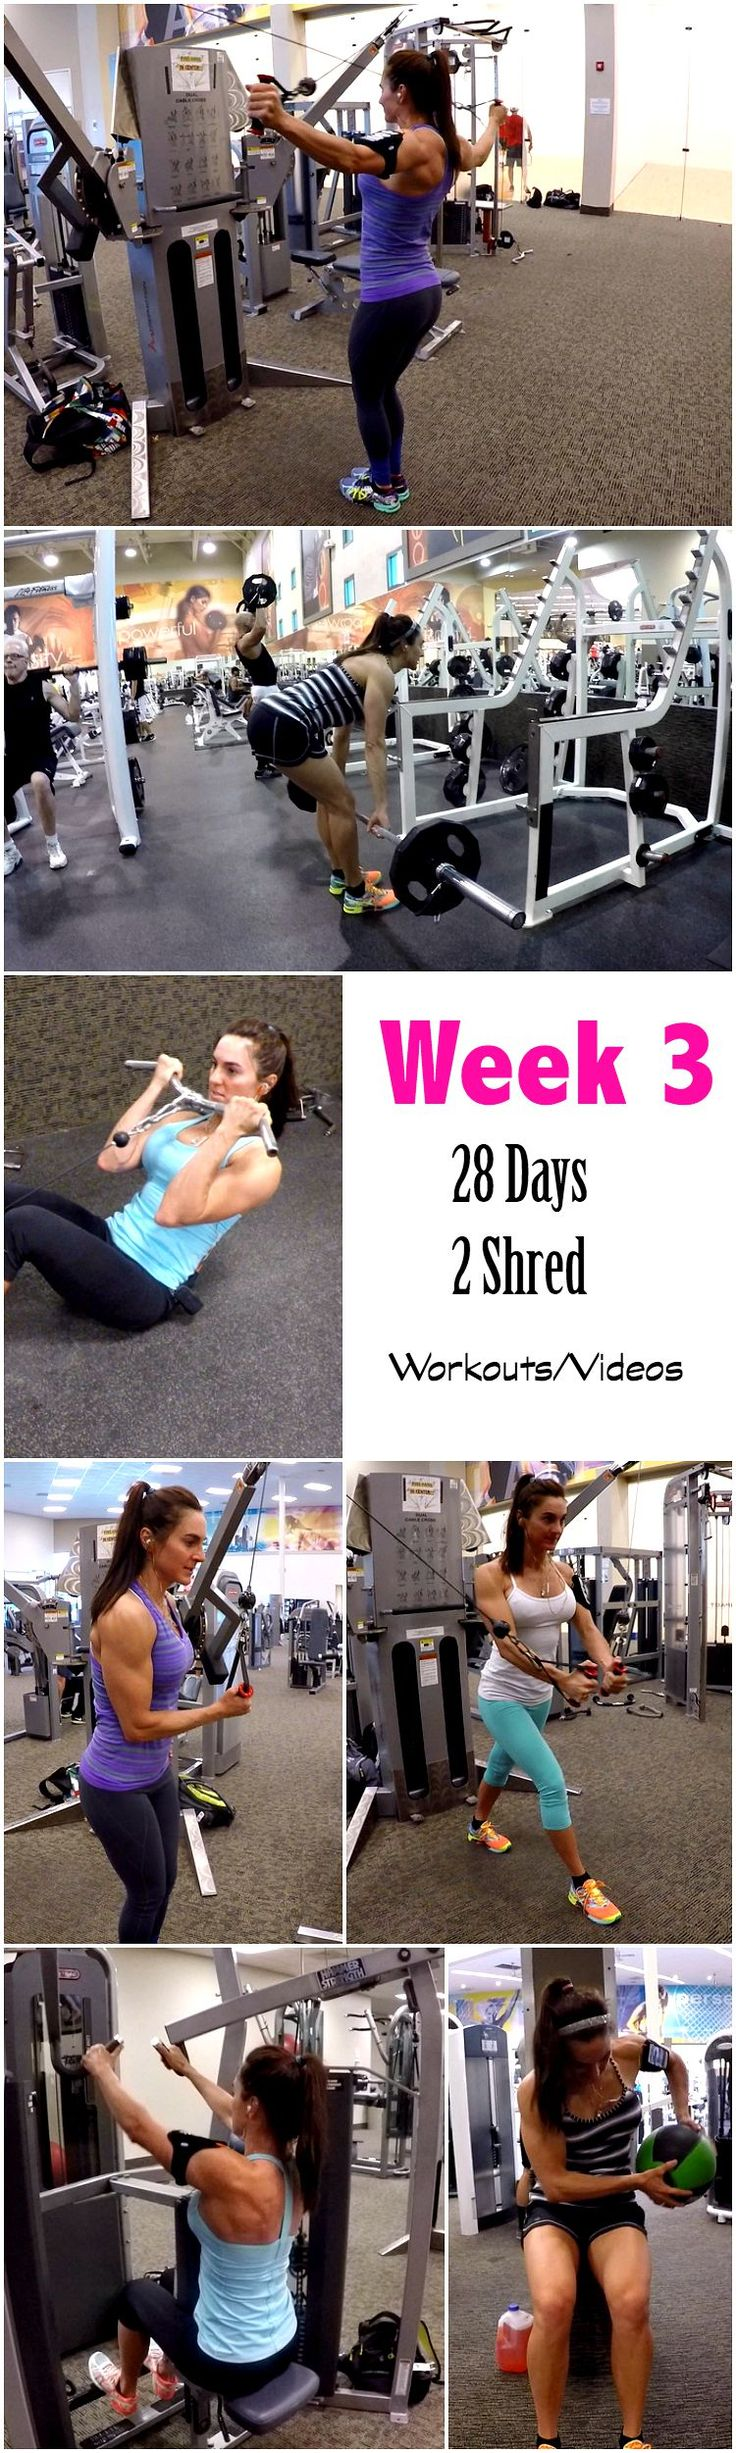 Week 3 workouts/Videos 28 Days 2 Shred